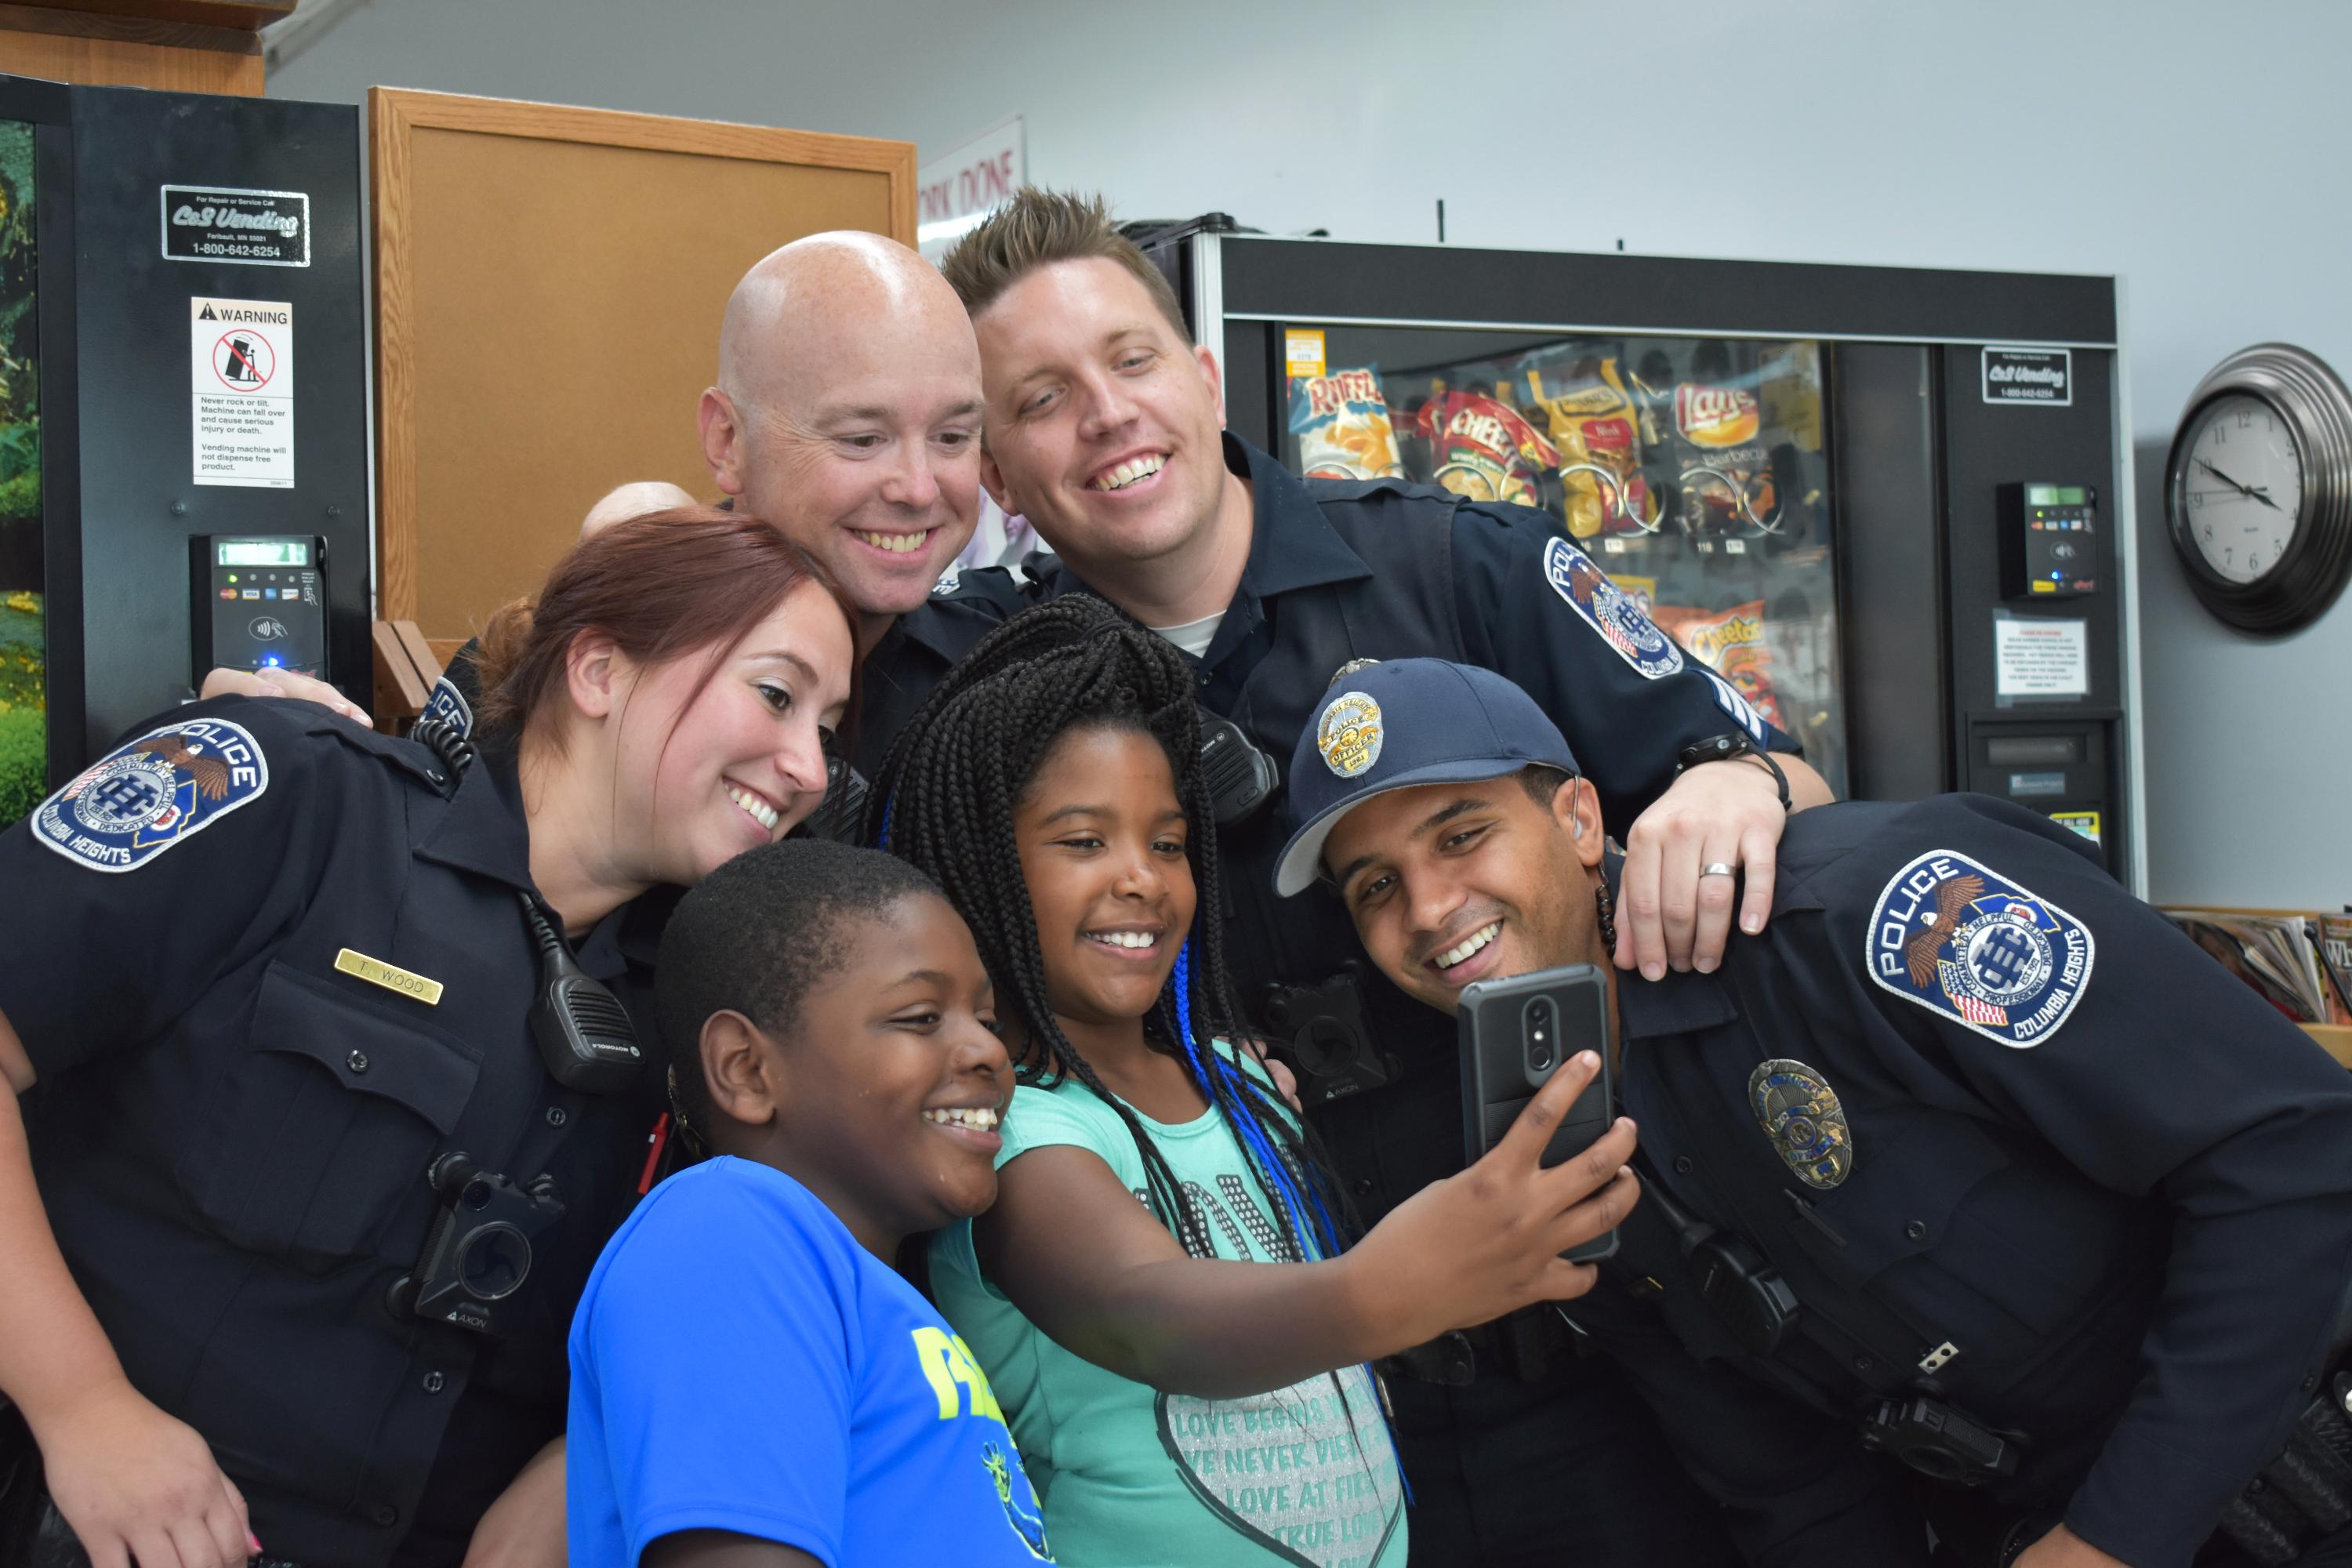 Cuts with a Cop Group Selfie with De'aria Roduez (4th grader) and brother